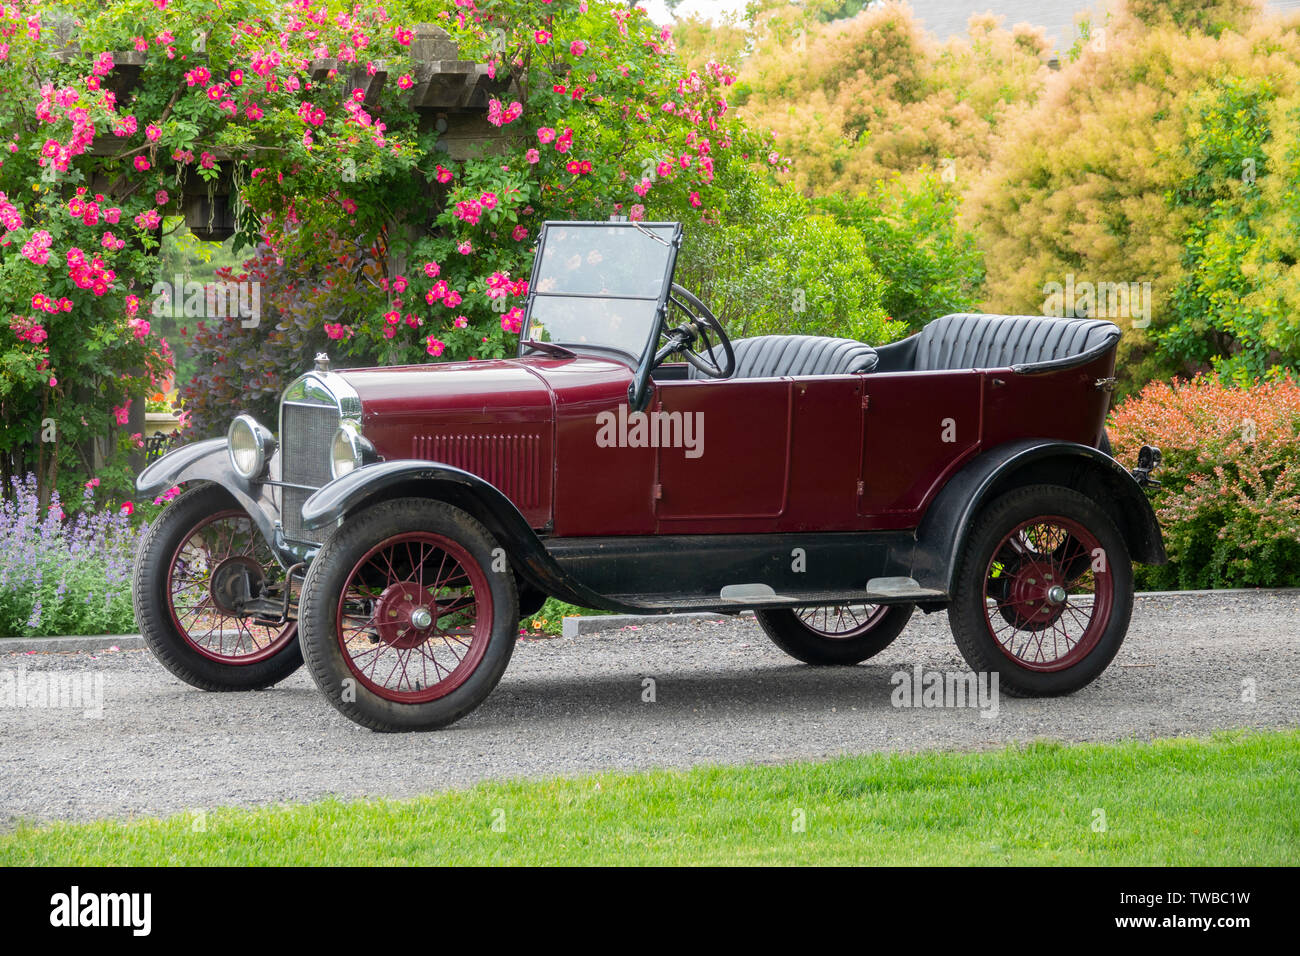 usa-automobiles-car-ford-model-t-circa-1925-red-auto-TWBC1W.jpg